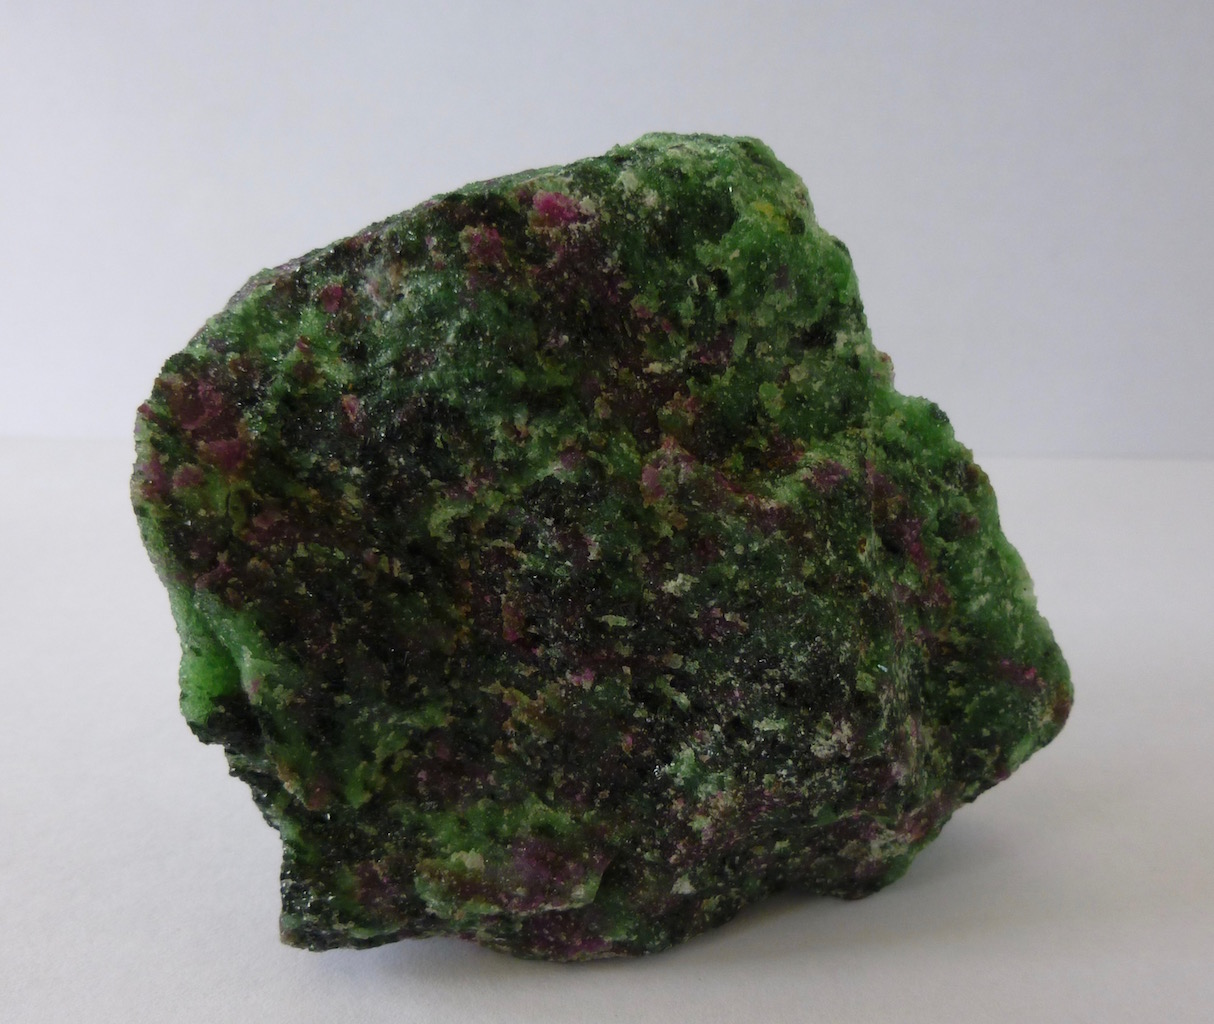 Ruby Zoisite & Pargasite